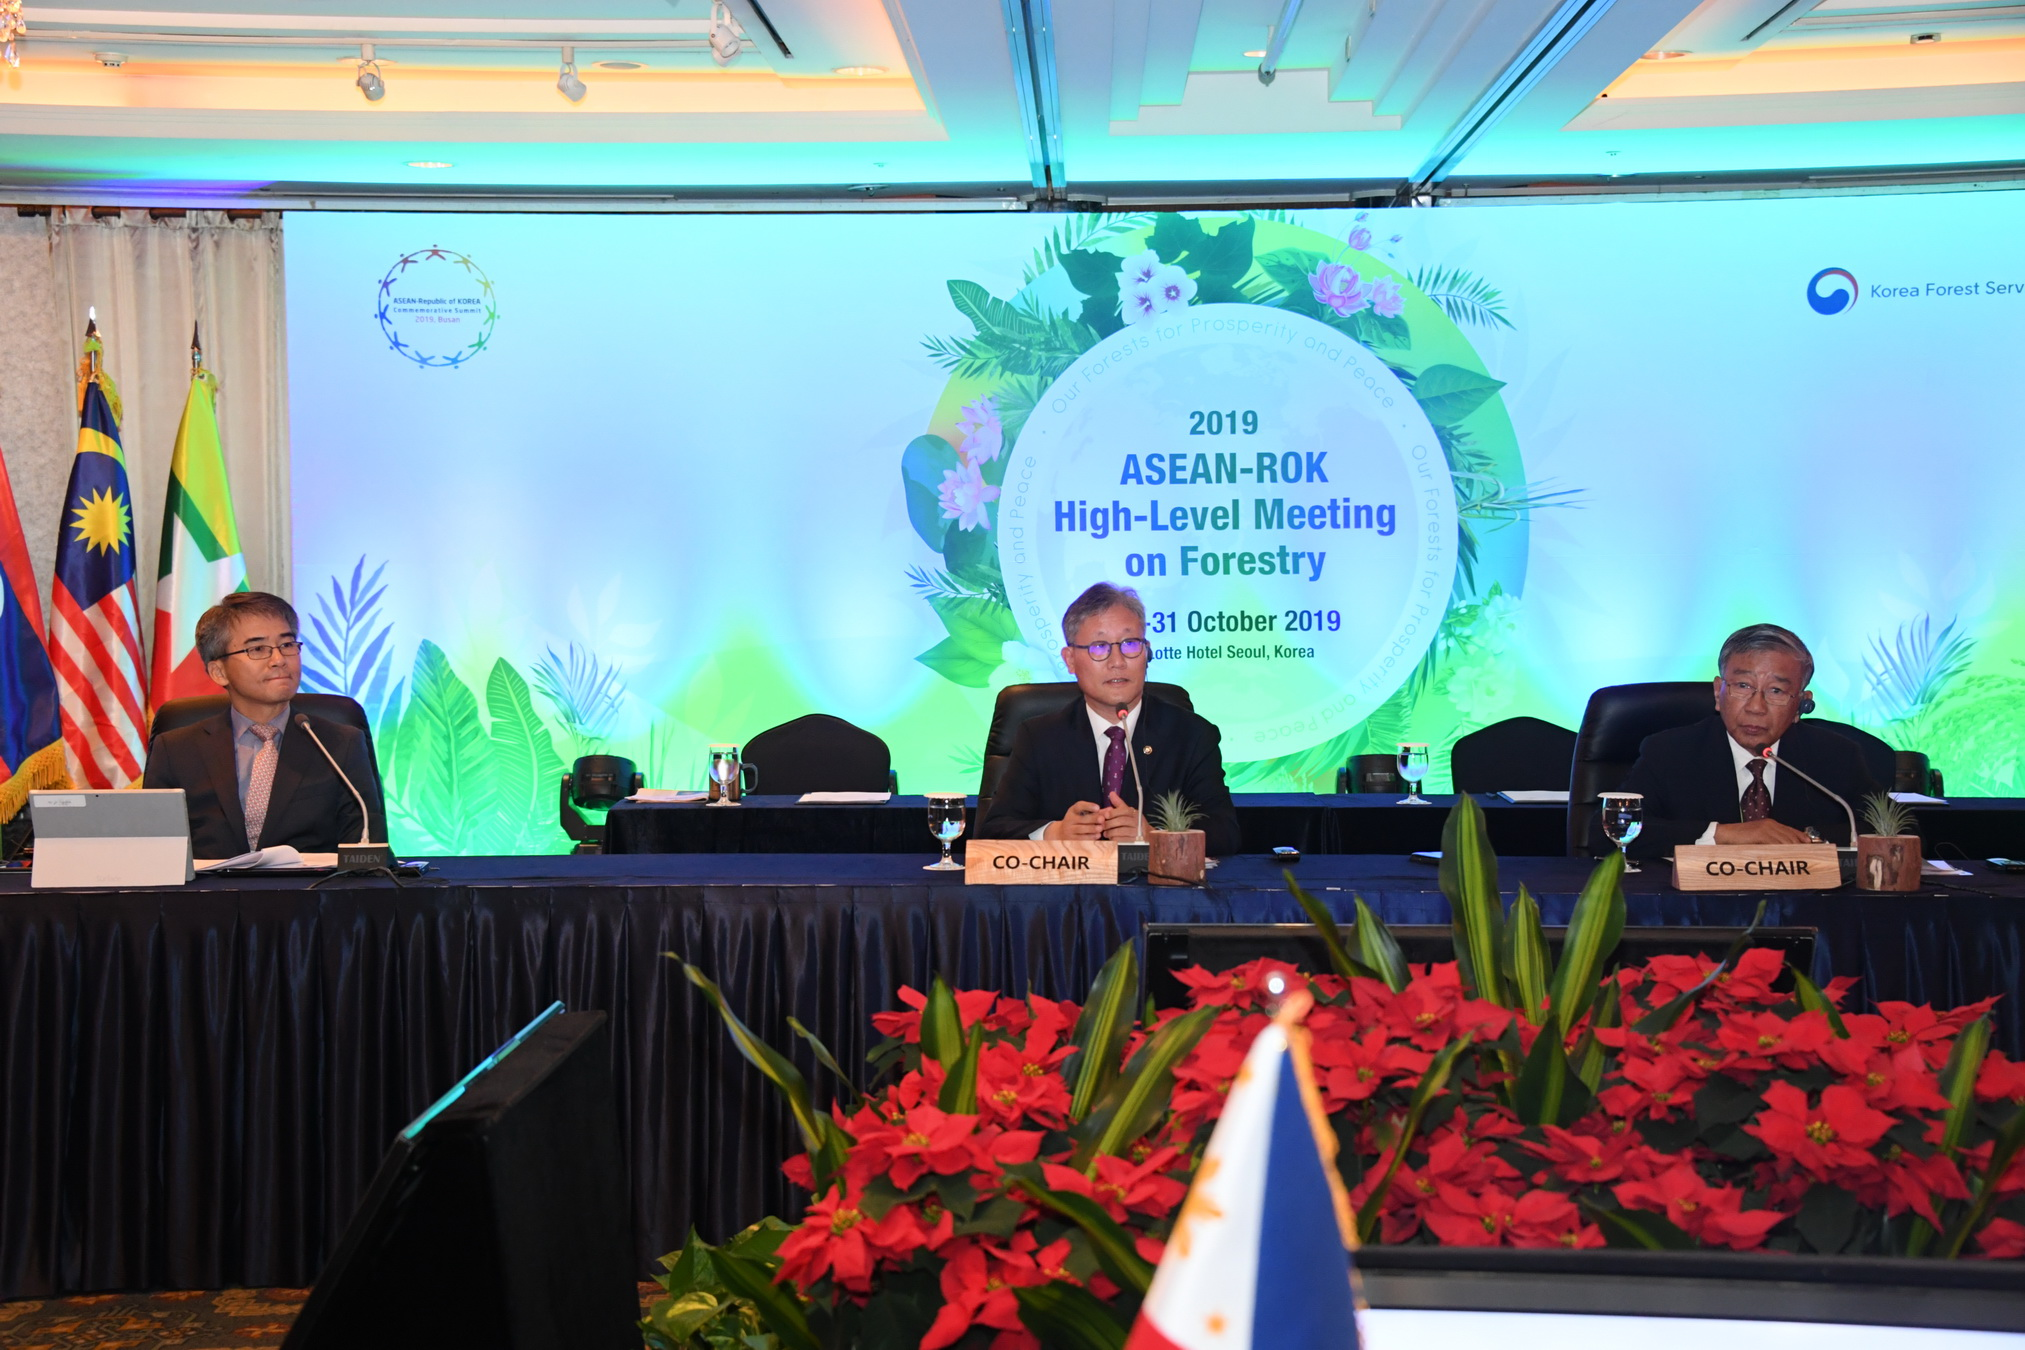 ASEAN-ROK High Level Meeting on Forestry 2019 썸네일 이미지1